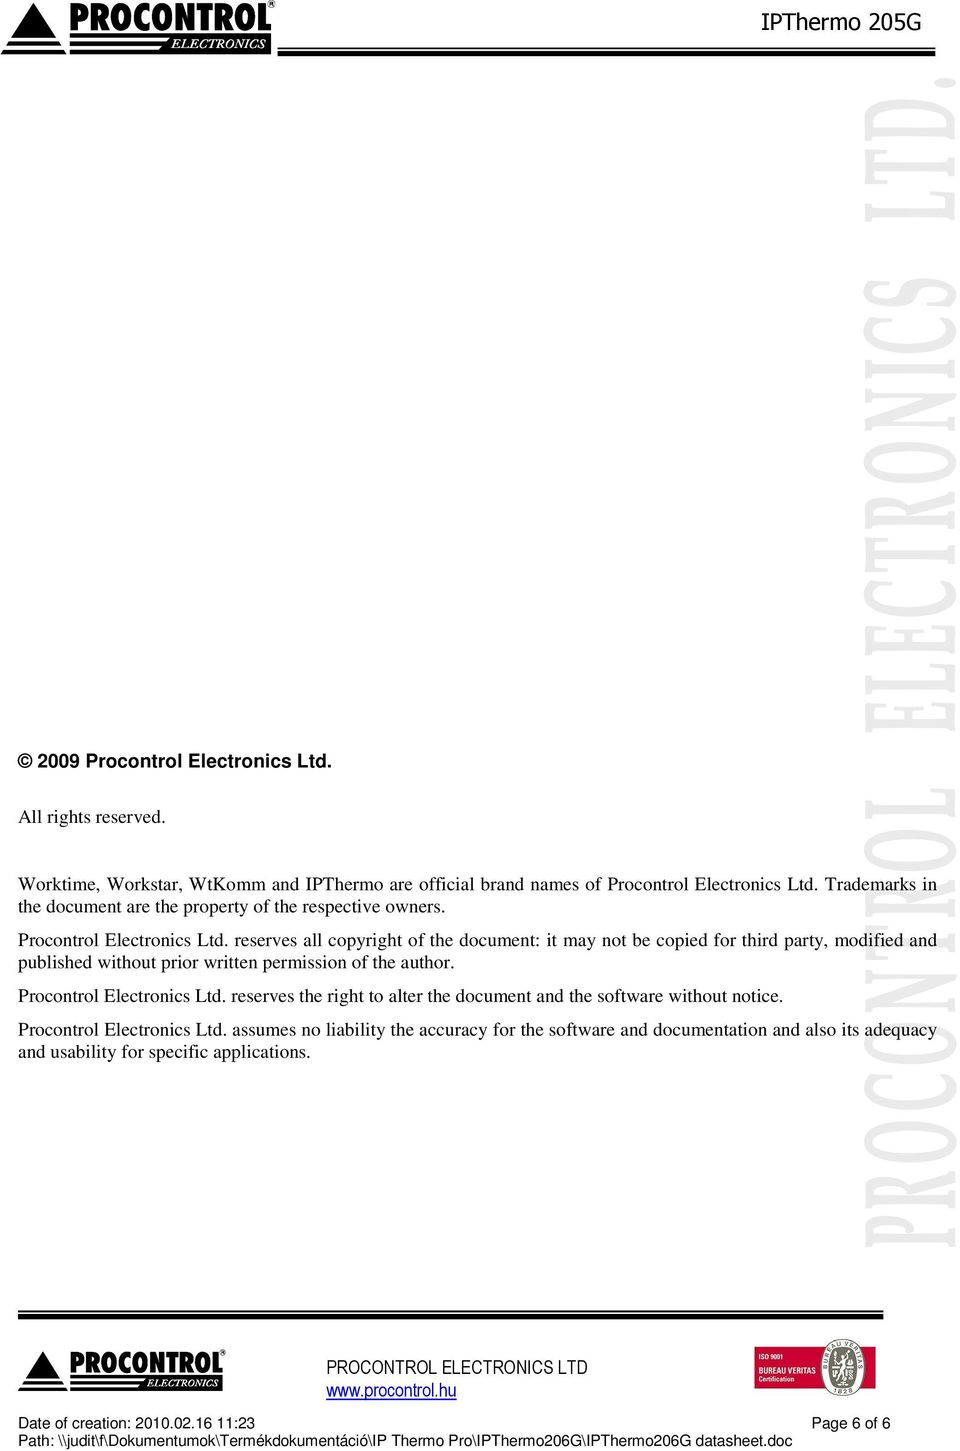 reserves all copyright of the document: it may not be copied for third party, modified and published without prior written permission of the author. Procontrol Electronics Ltd.